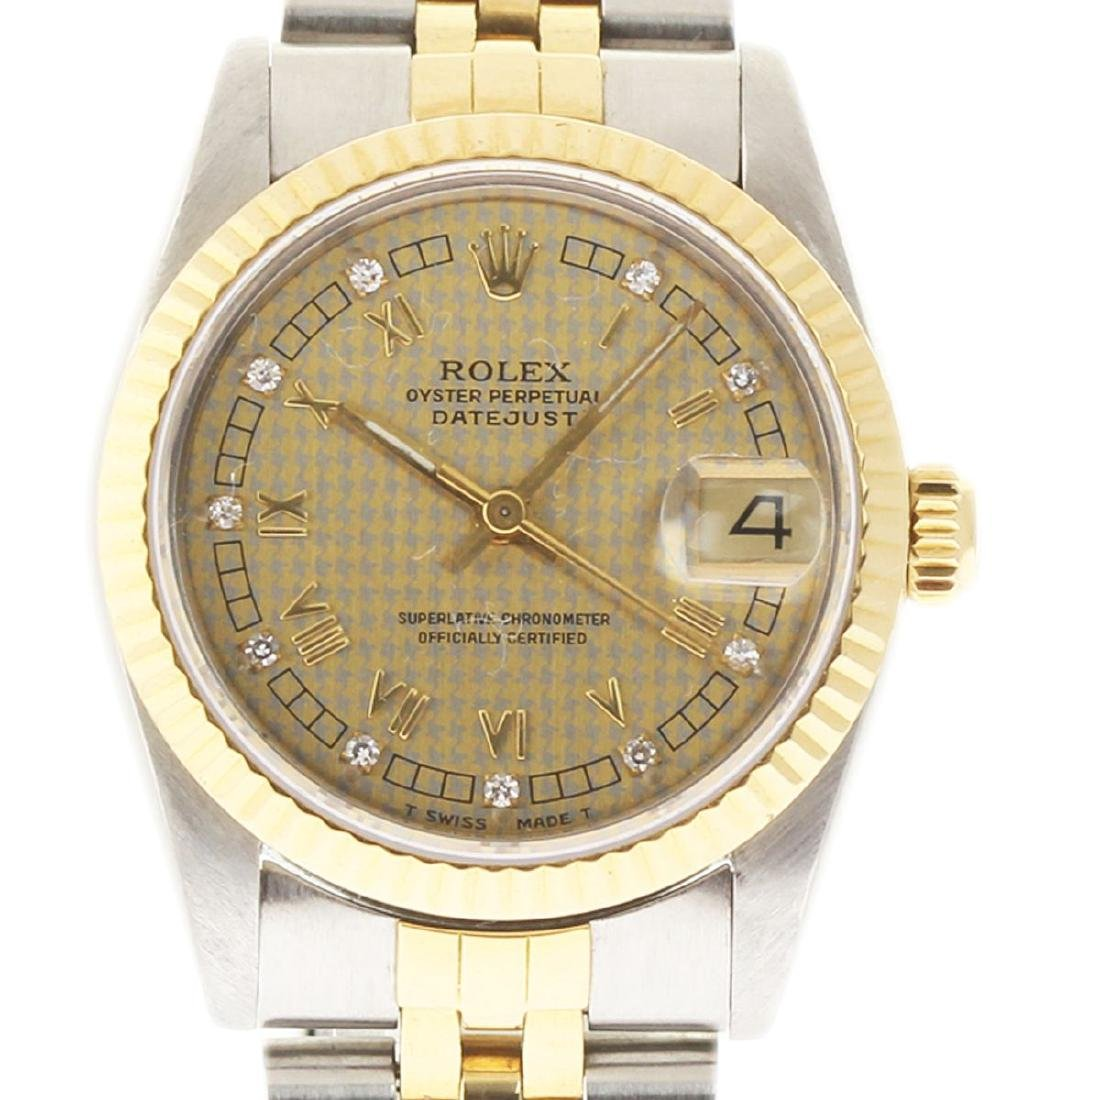 Rolex Datejust with Diamond dial